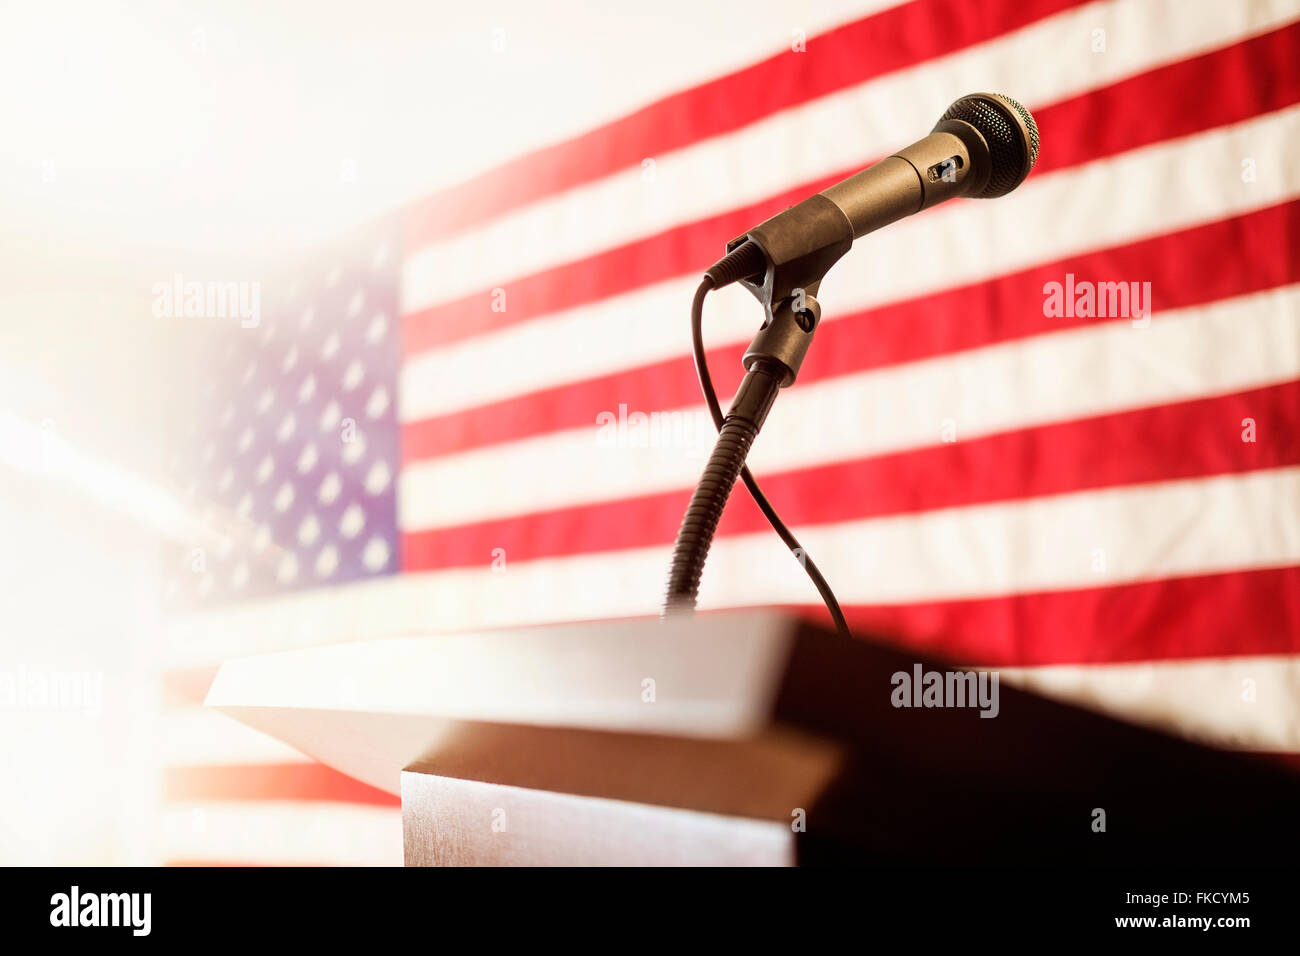 Lectern with American flag in background - Stock Image